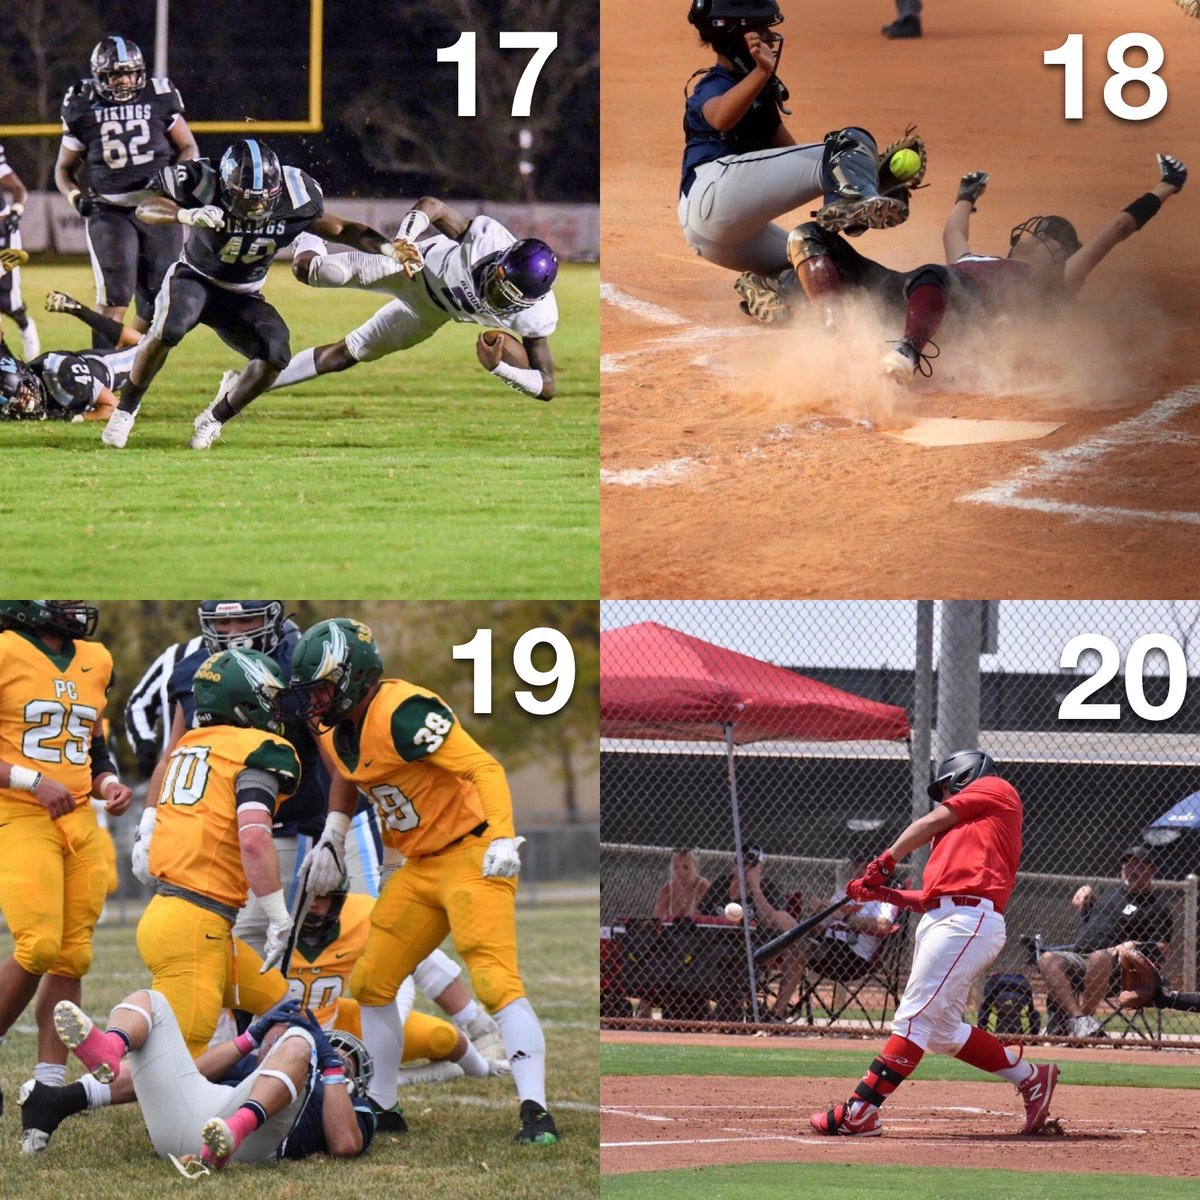 December is here 🎄❄️ #POTW  24 Pictures... 4 Will Move on Tag the@ of your favorite picture in the comments to vote for who wins #POTW  Post with #POTW on the Sports Thread App to be featured⬇️  17:@seanmax52783677 18:@Bella_Silva35 19:@ChristieBraden 20:@LelandRiley8